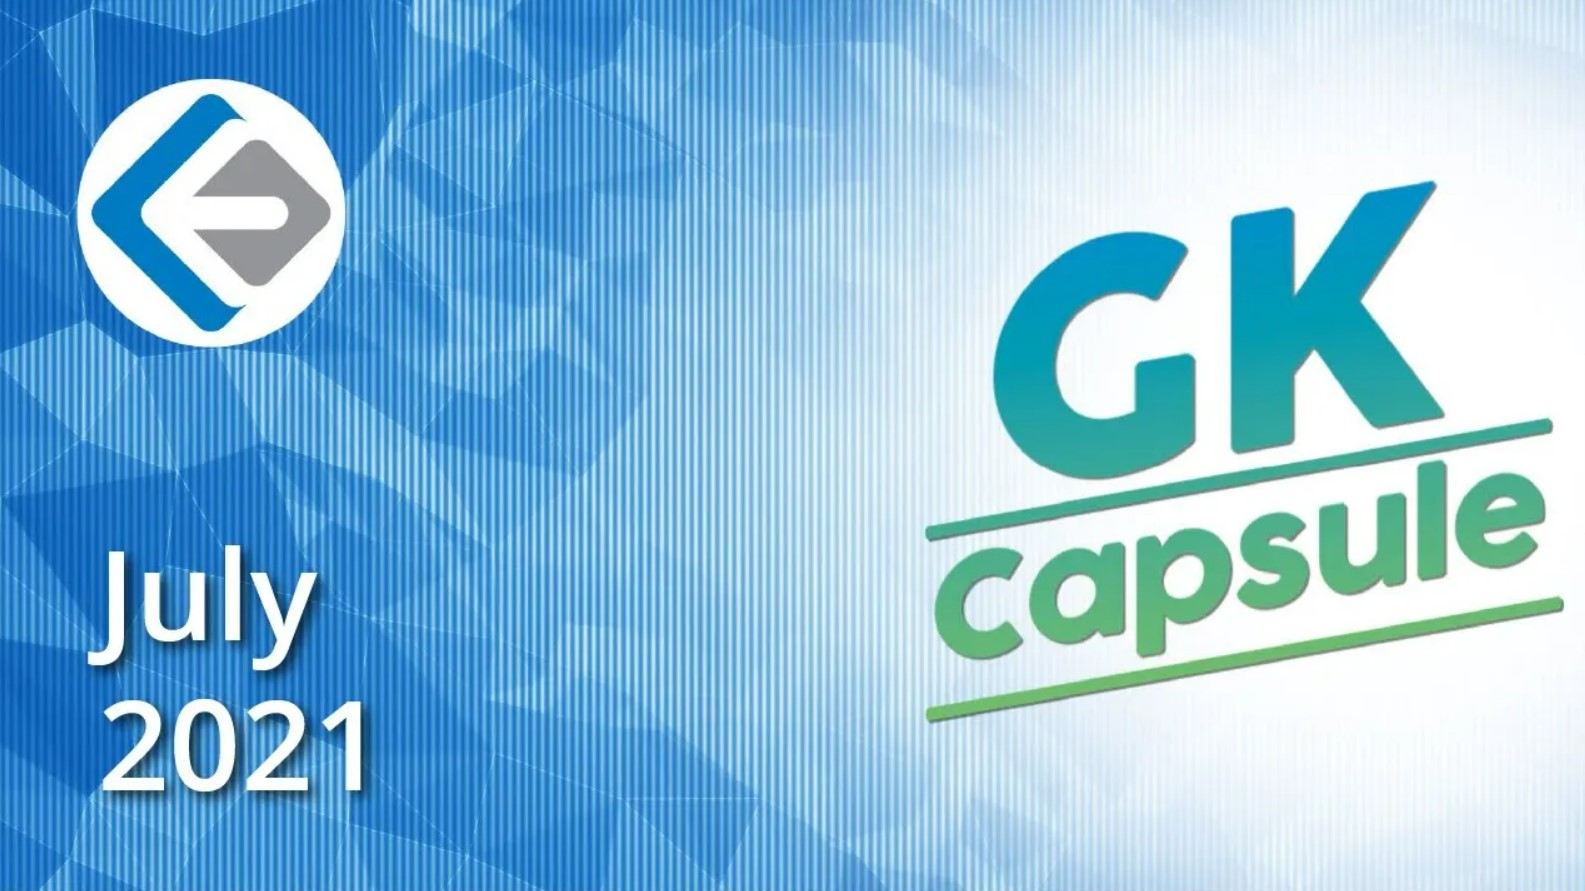 GK capsule-monthly current affairs-July 2021